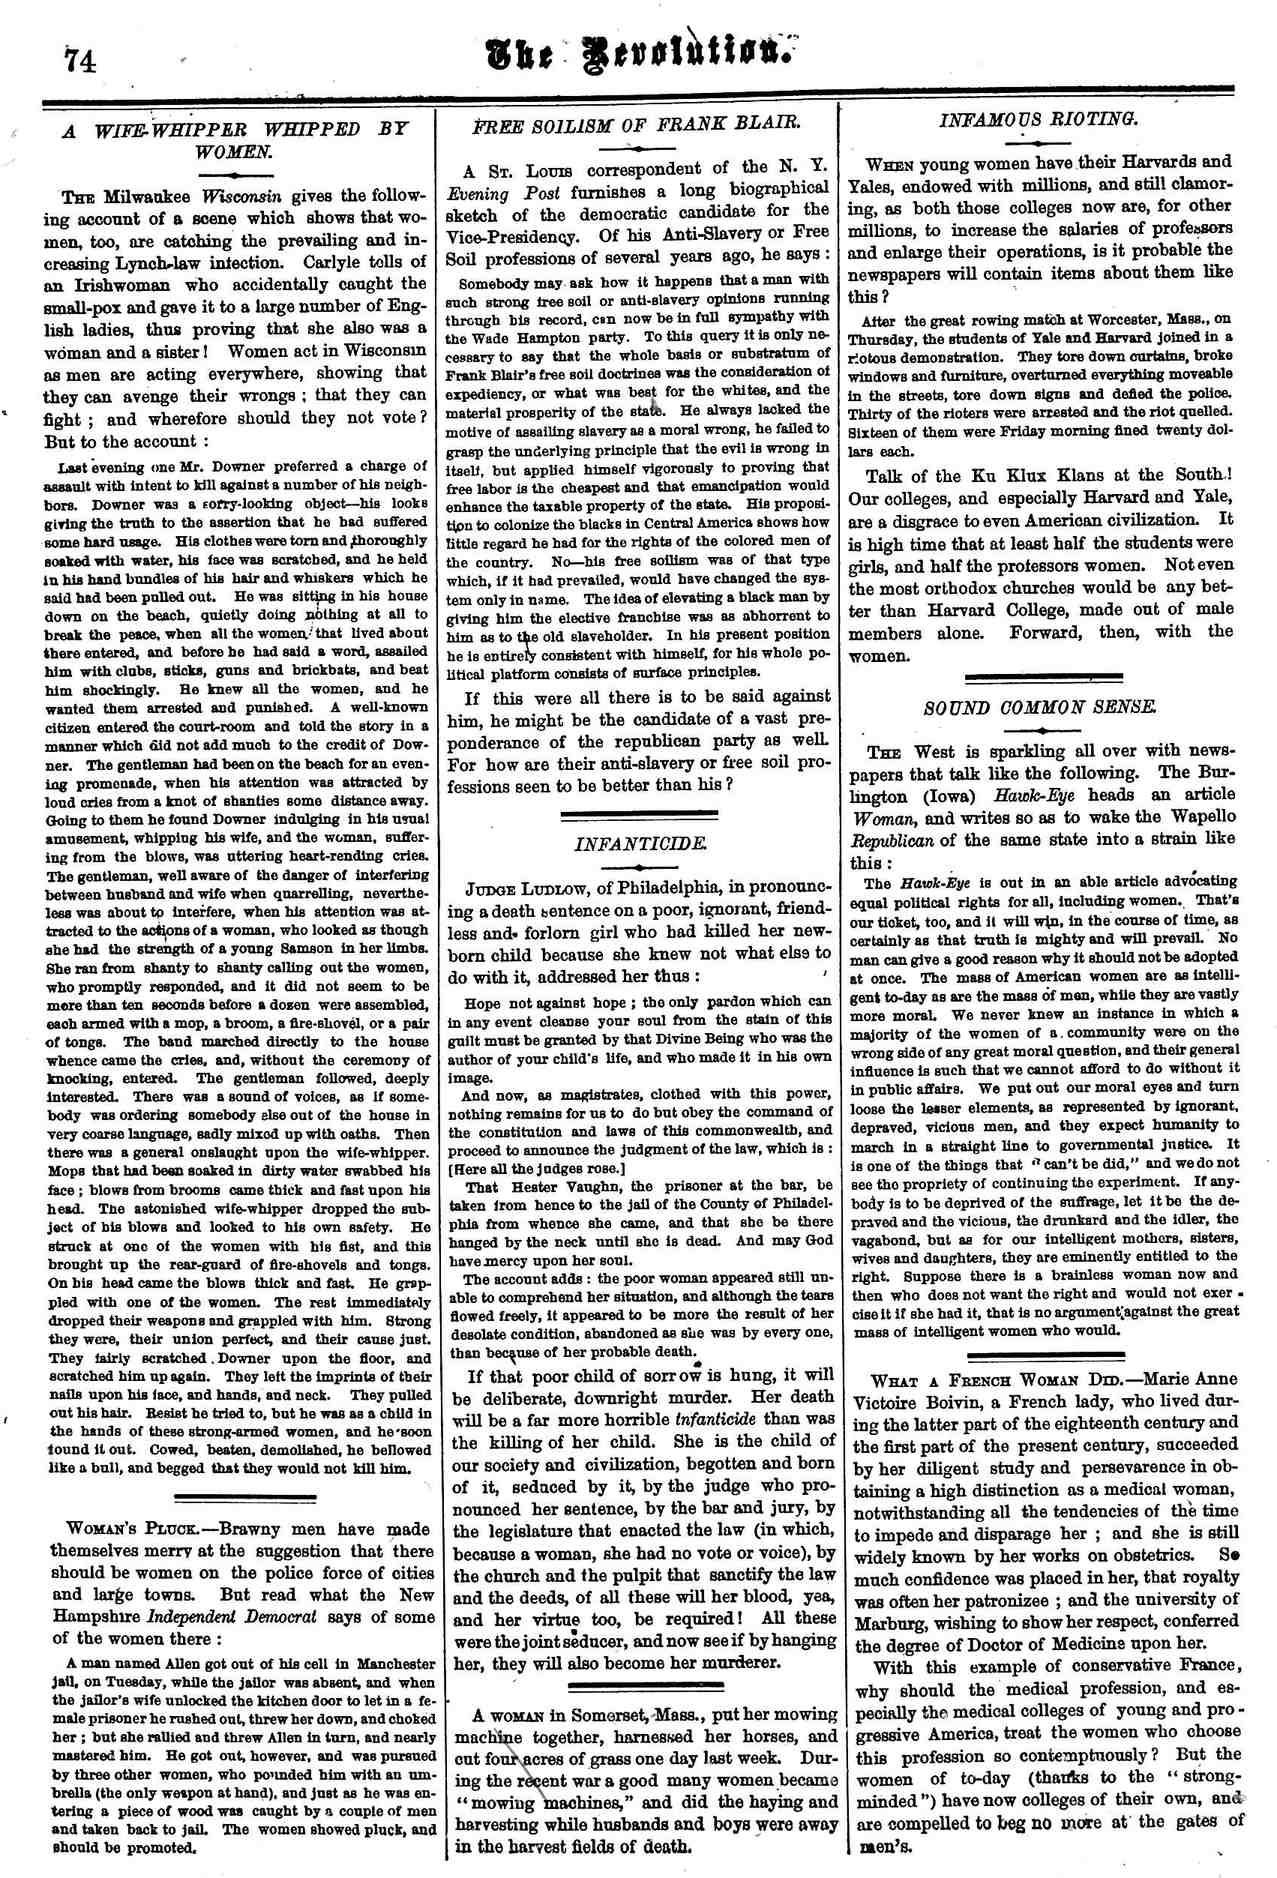 The-Revolution-Susan-B.-Anthony's-Suffrage-Women's-Rights-Newspaper-August-6,-1868